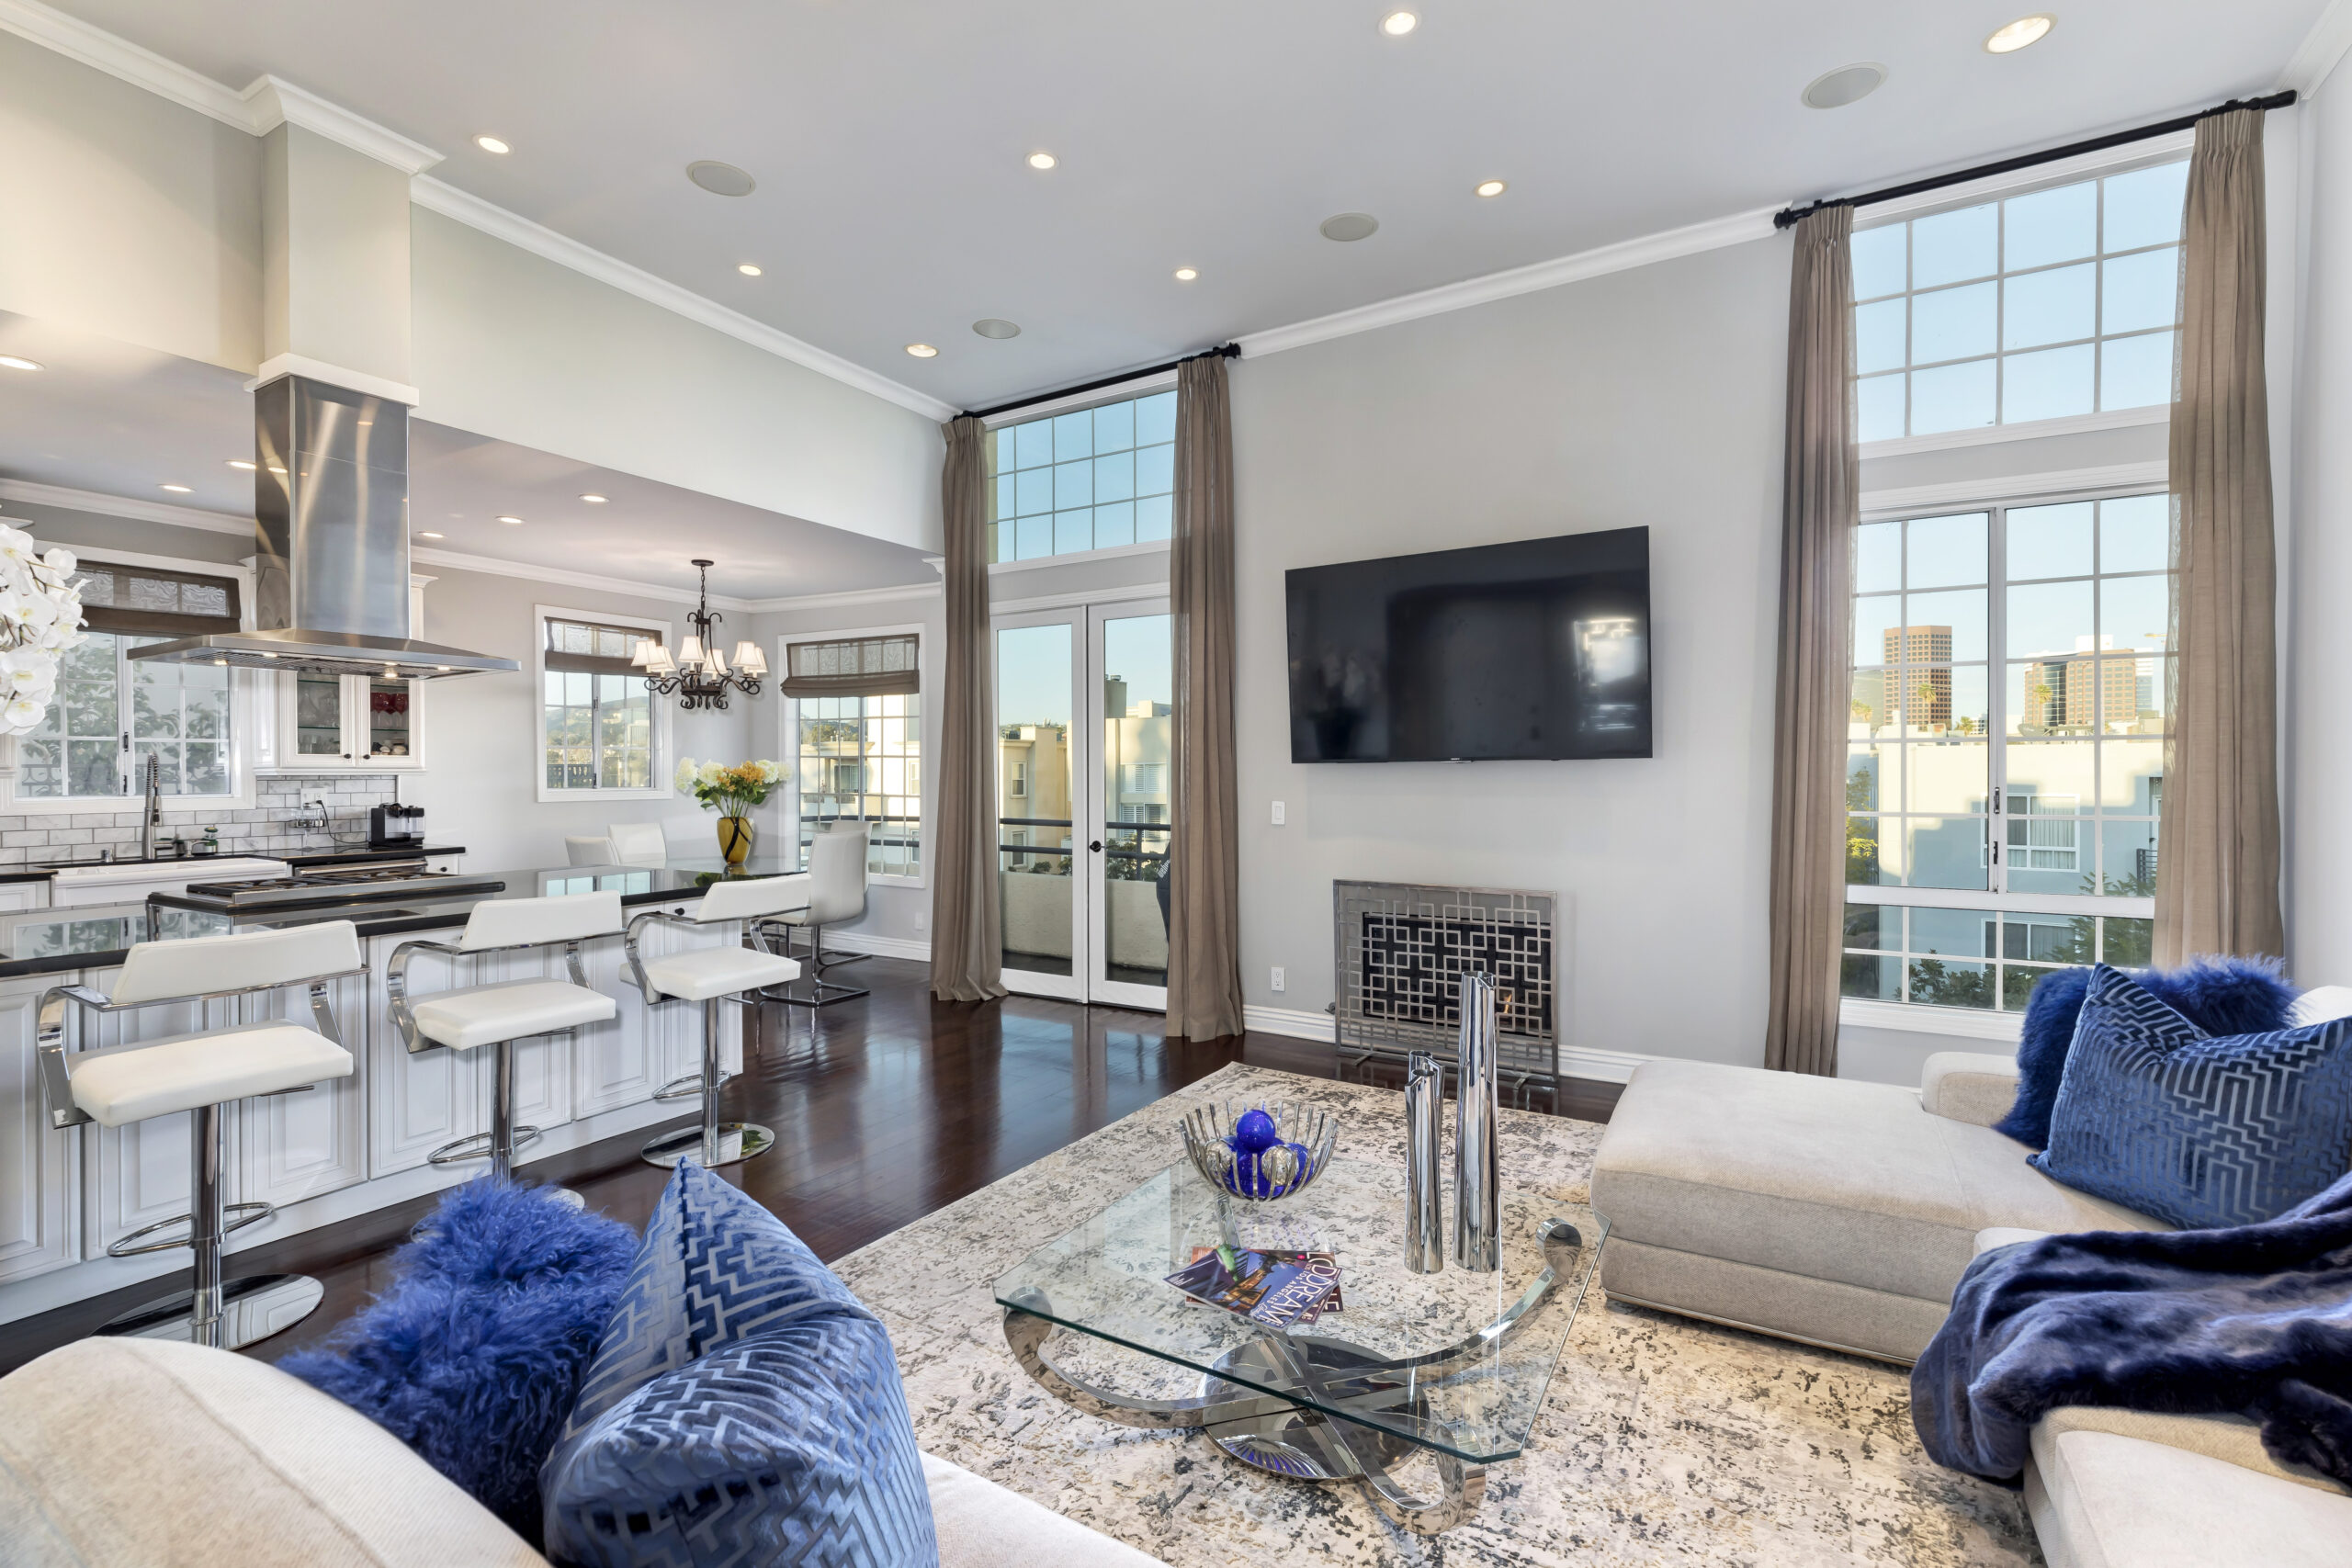 1169 Wellesley interior home staged